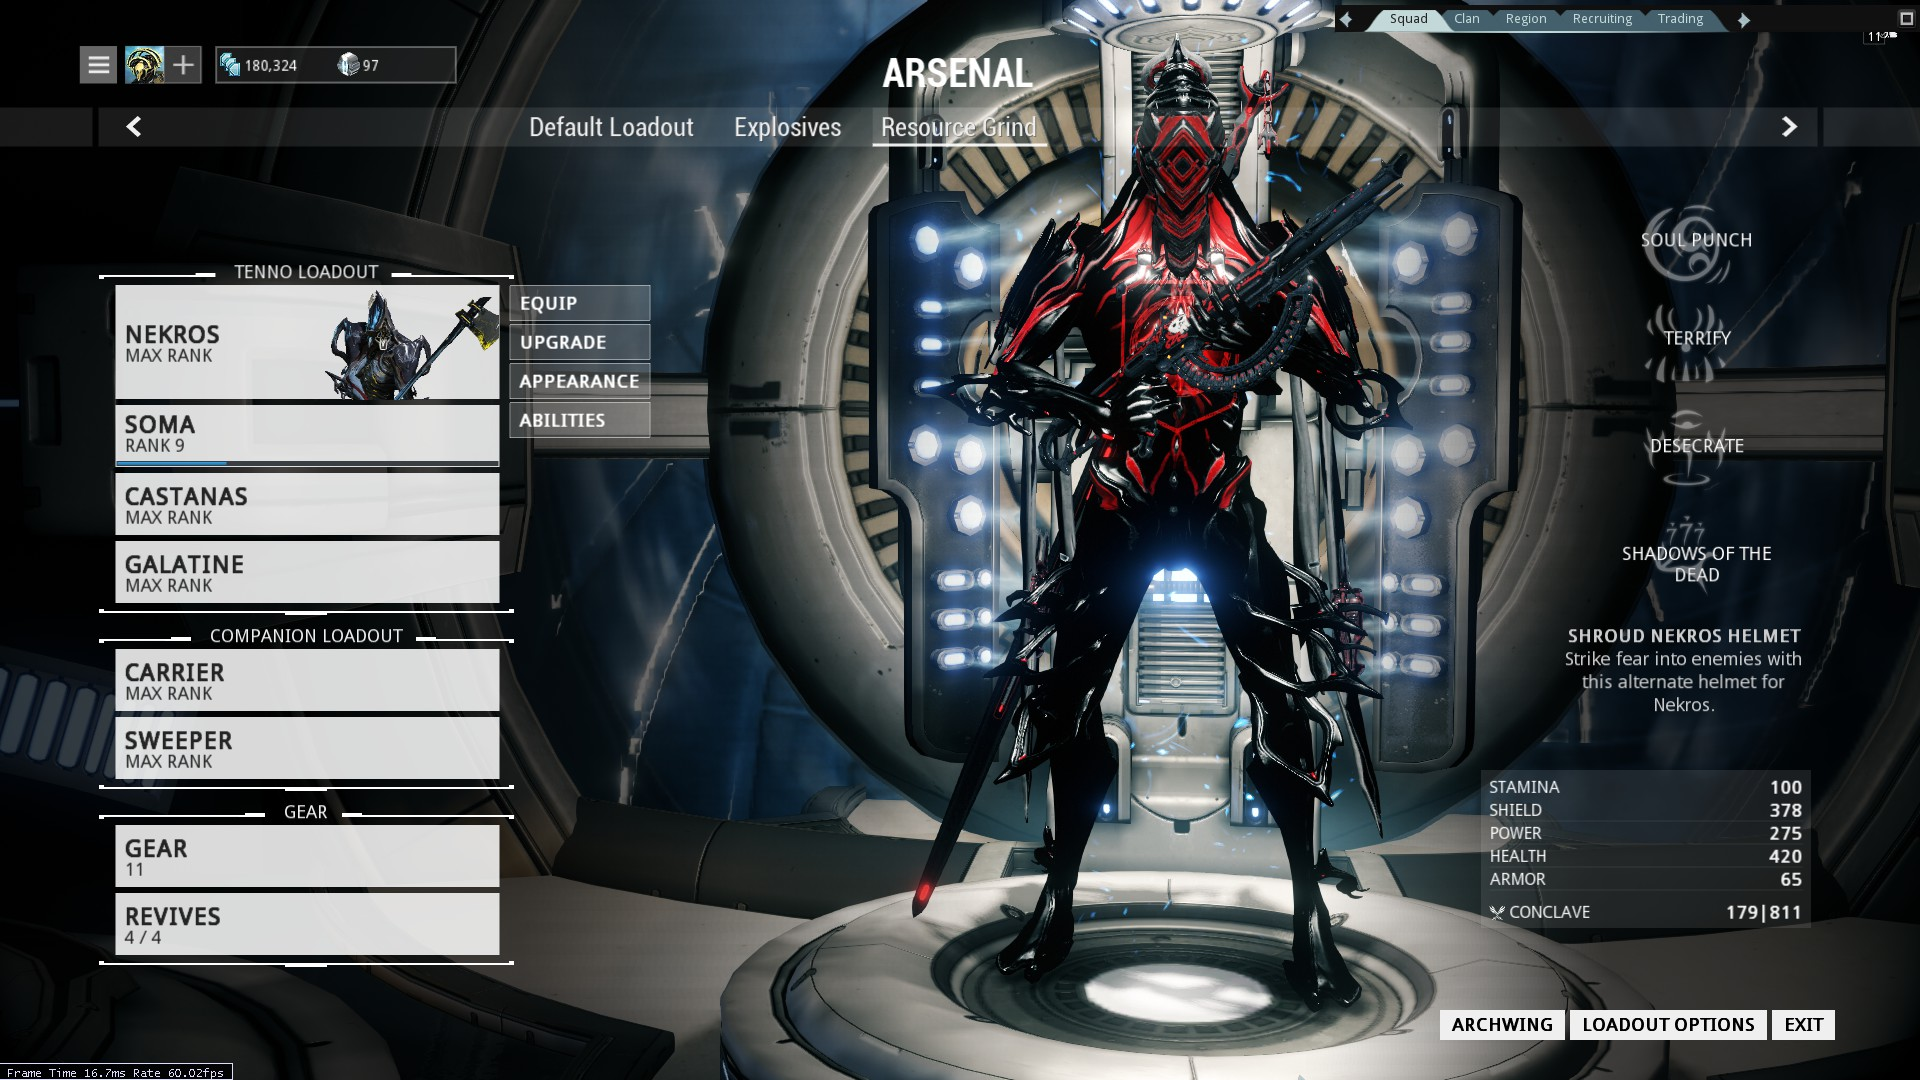 Steam Community Guide Discontinued Updated For U18 12 Warframe Prime Weapon Resource And Archwing Drop Tables I think you may have overlooked that information. u18 12 warframe prime weapon resource